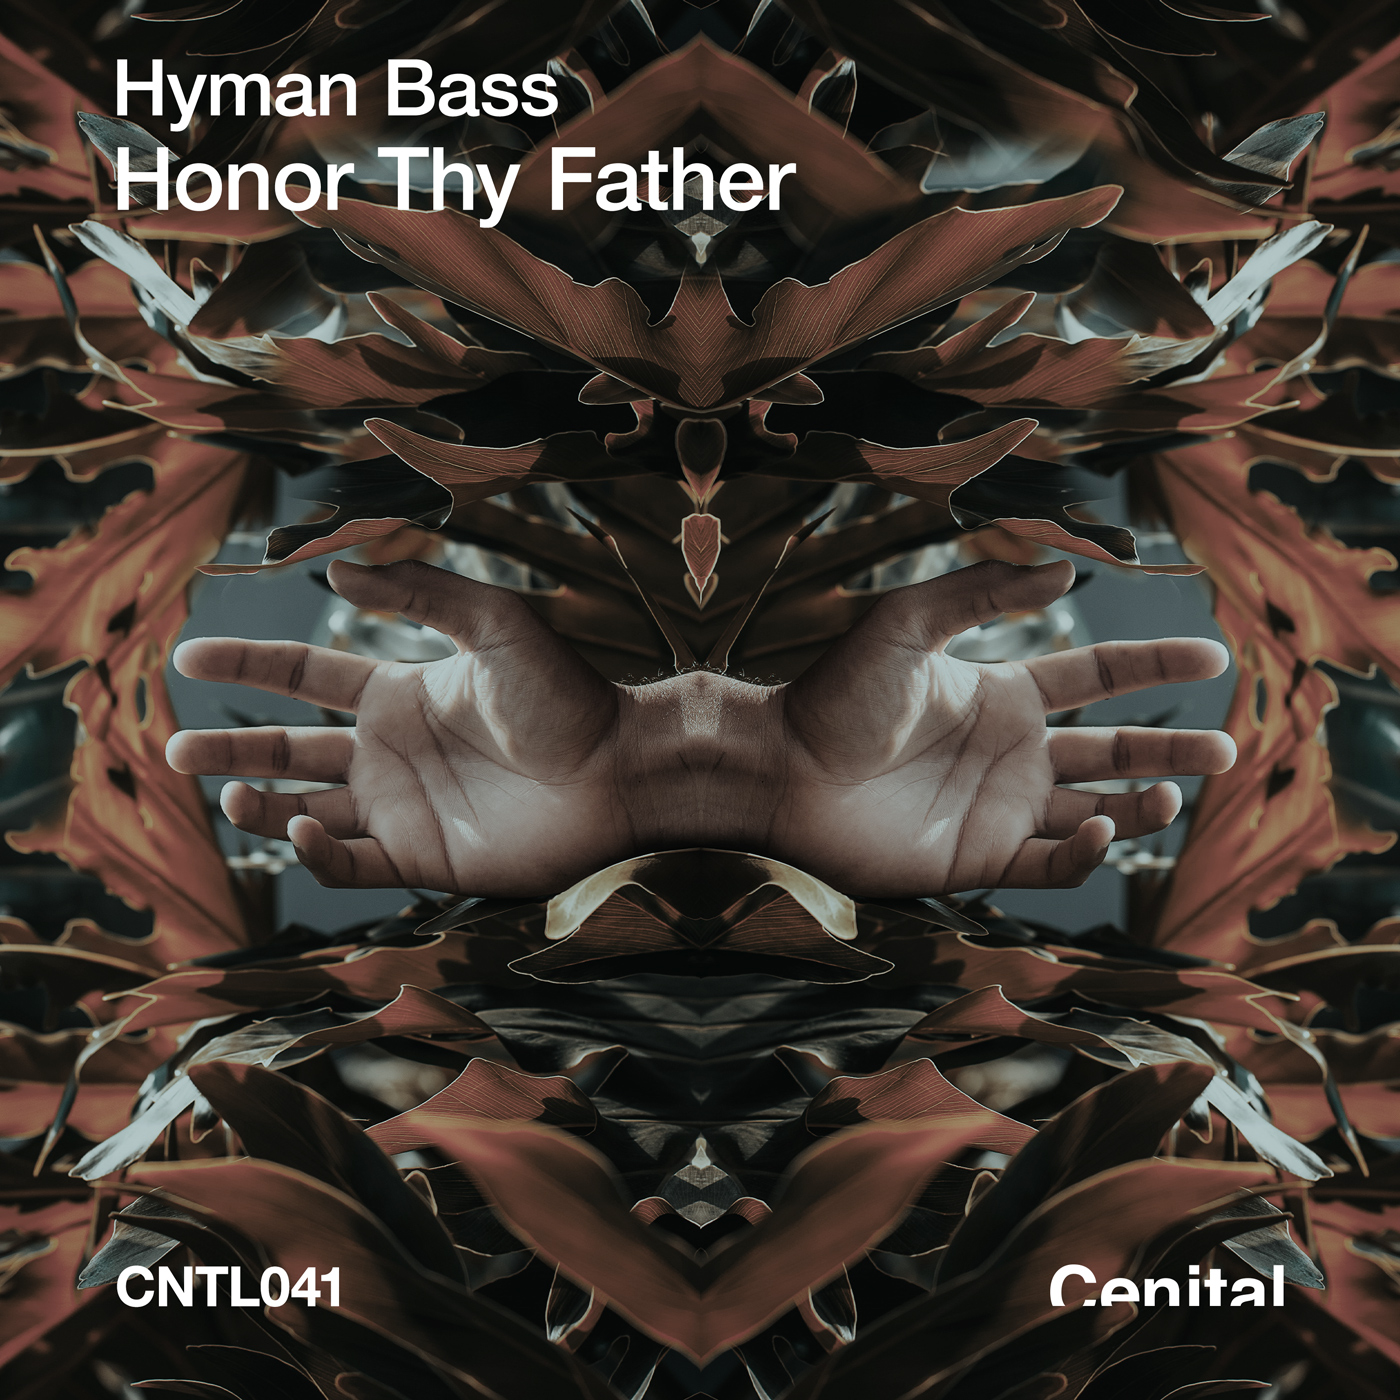 Hyman Bass - Honor Thy Father [CNTL041]